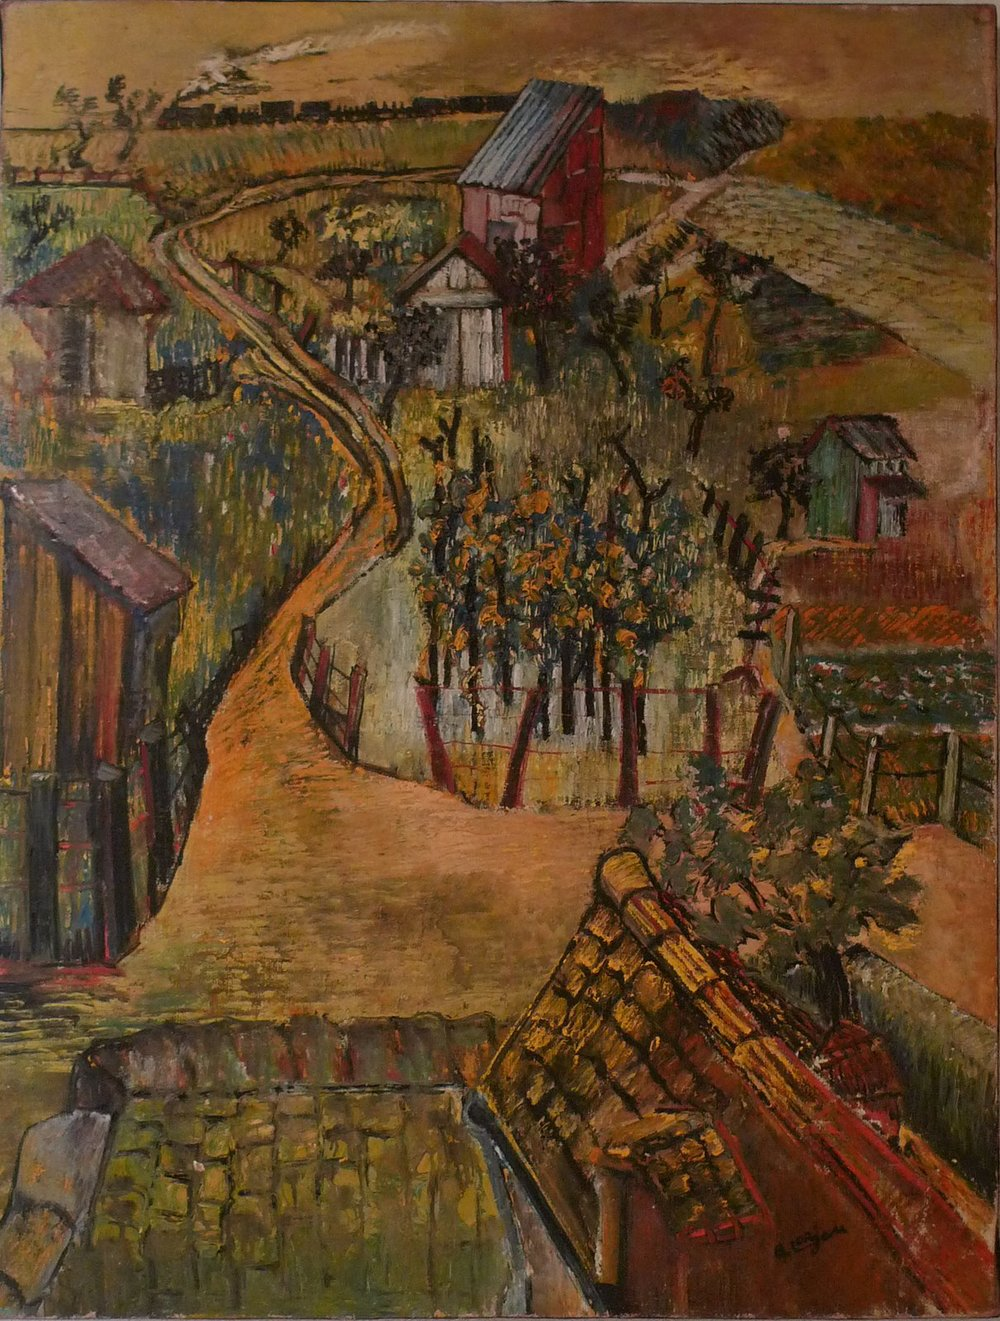 Landscape of the railroad tracks (1941)